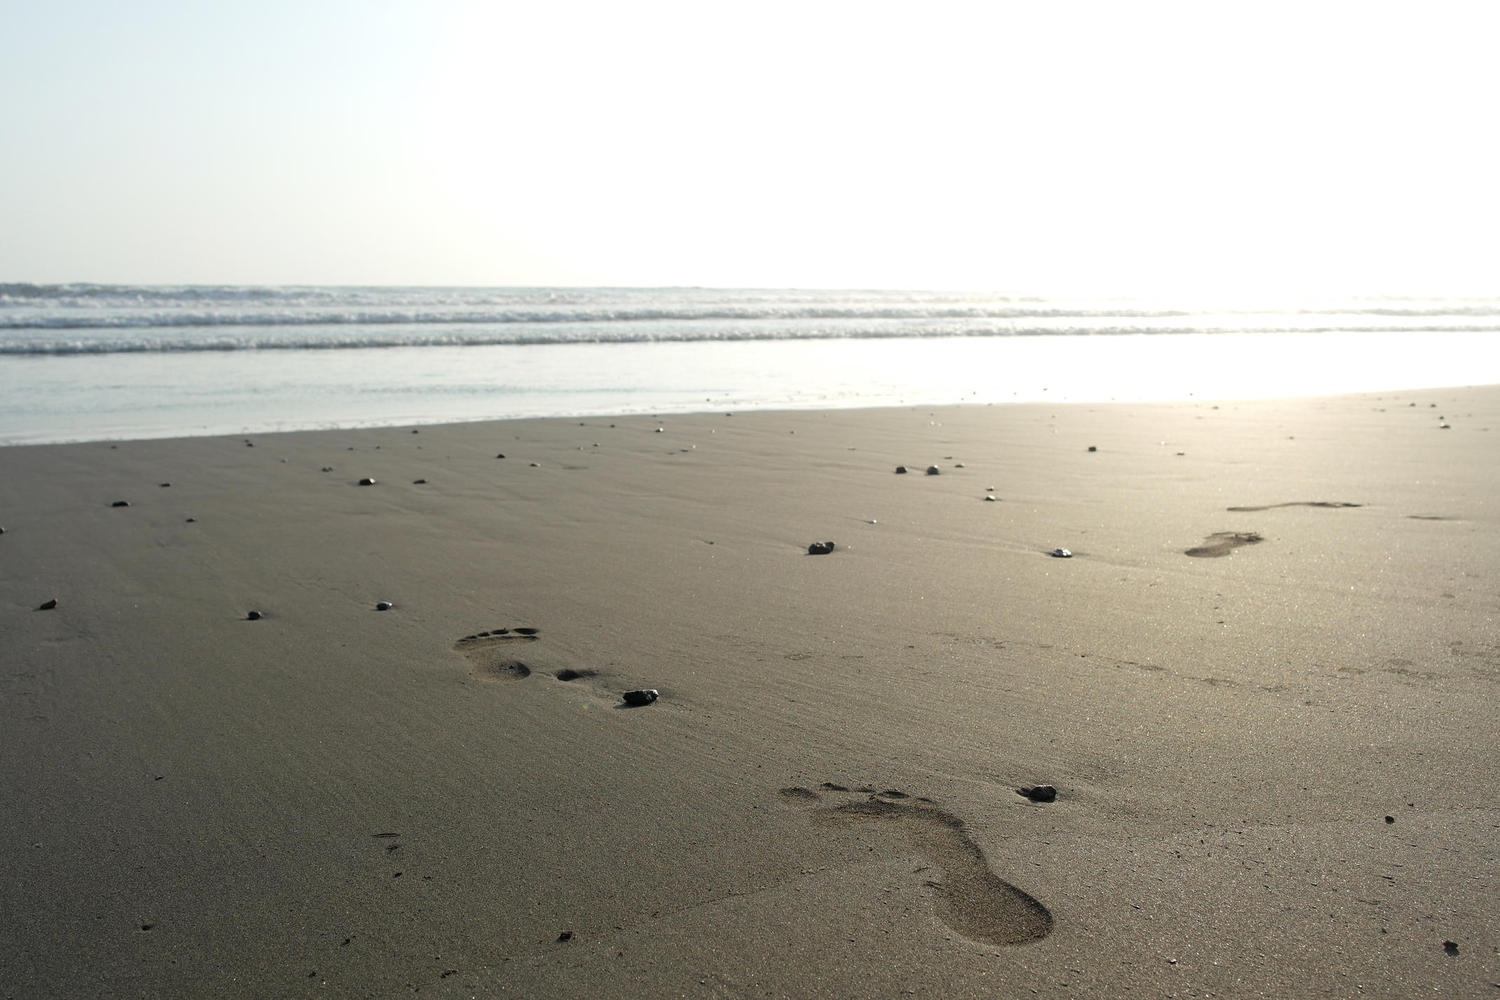 Footprints on Ostional beach, Nicoya Peninsula